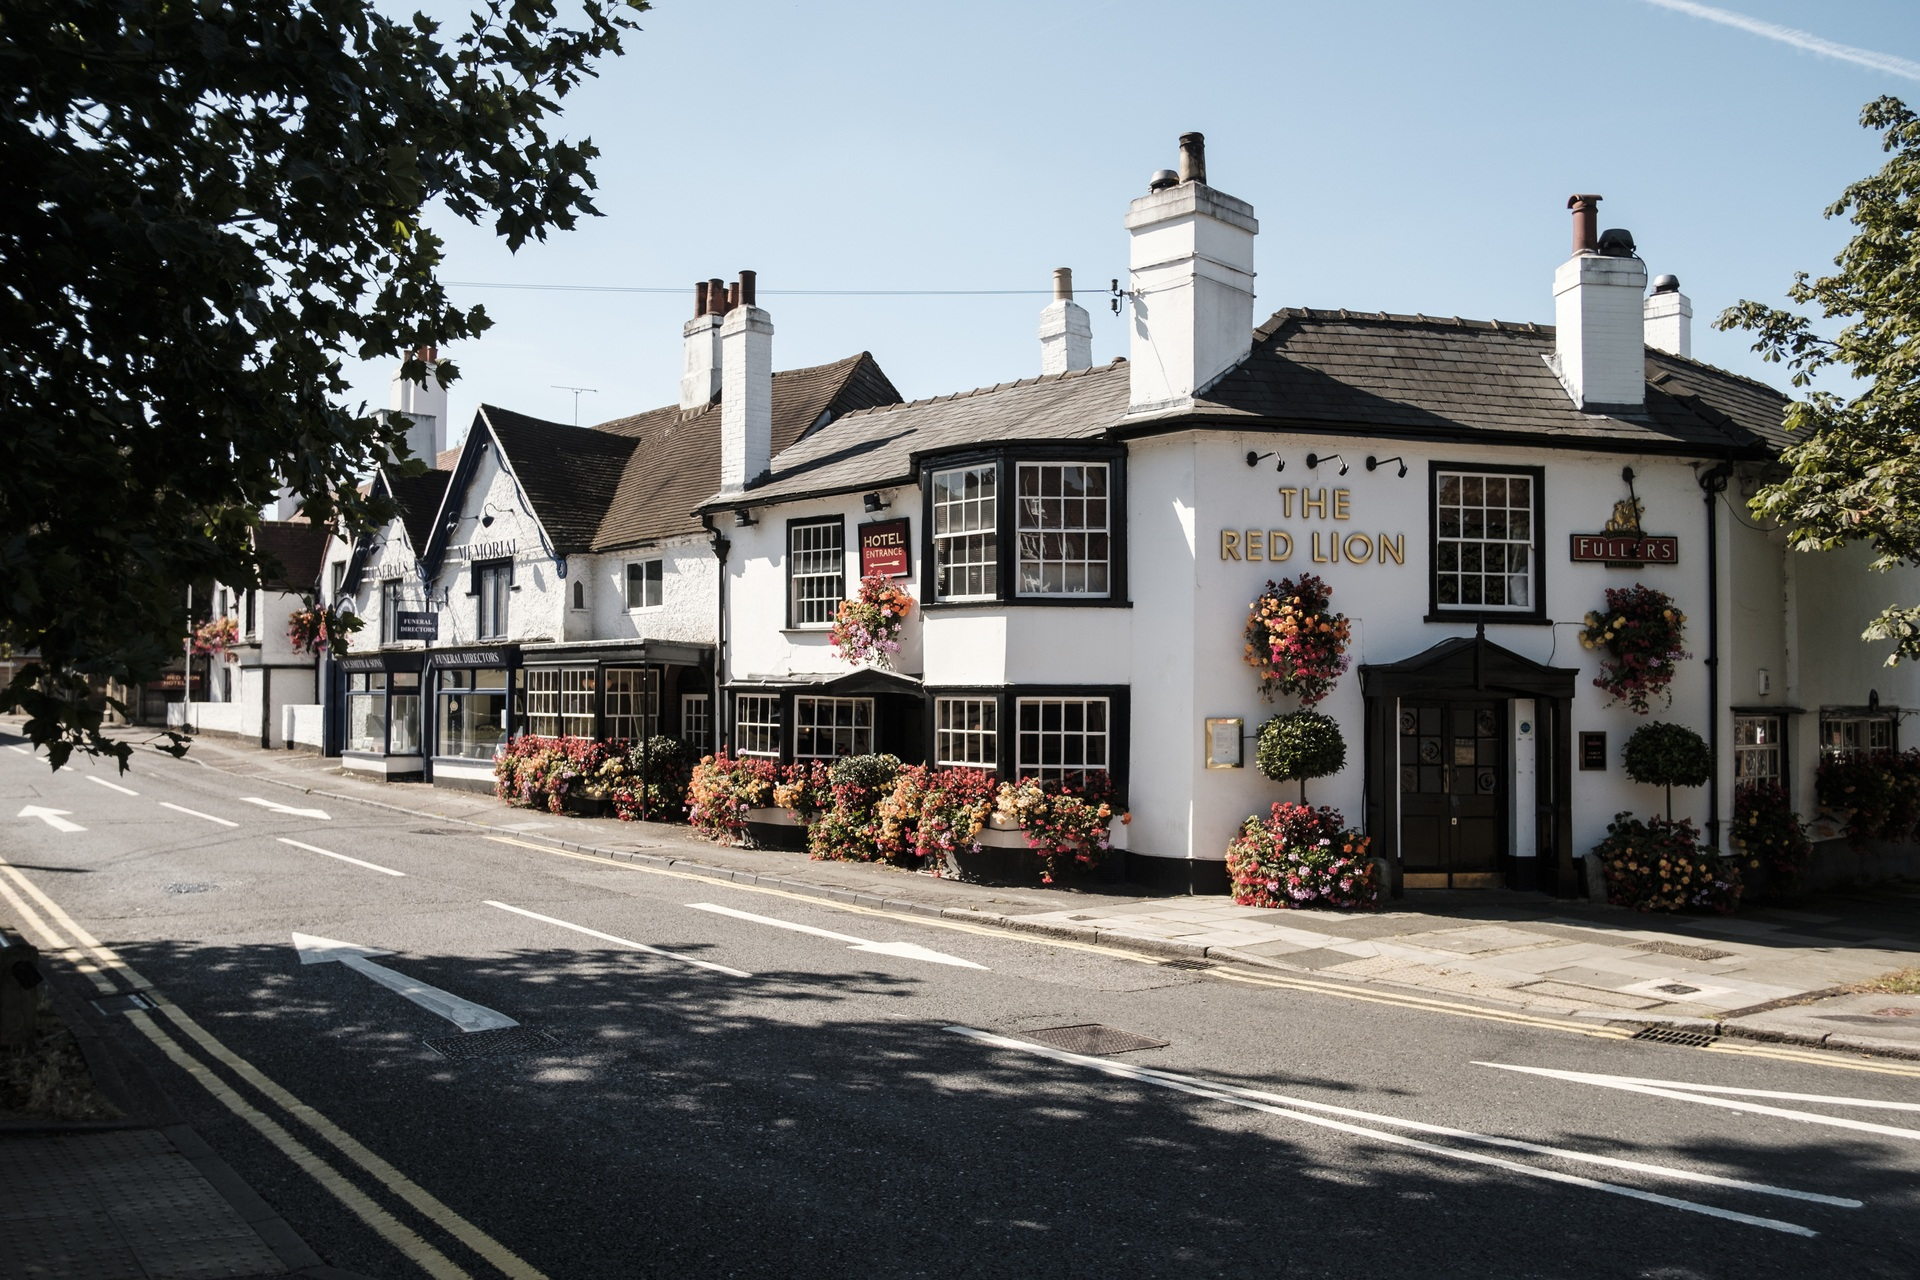 The Red Lion Hotel Fullers Pub And Hotel In Hillingdon